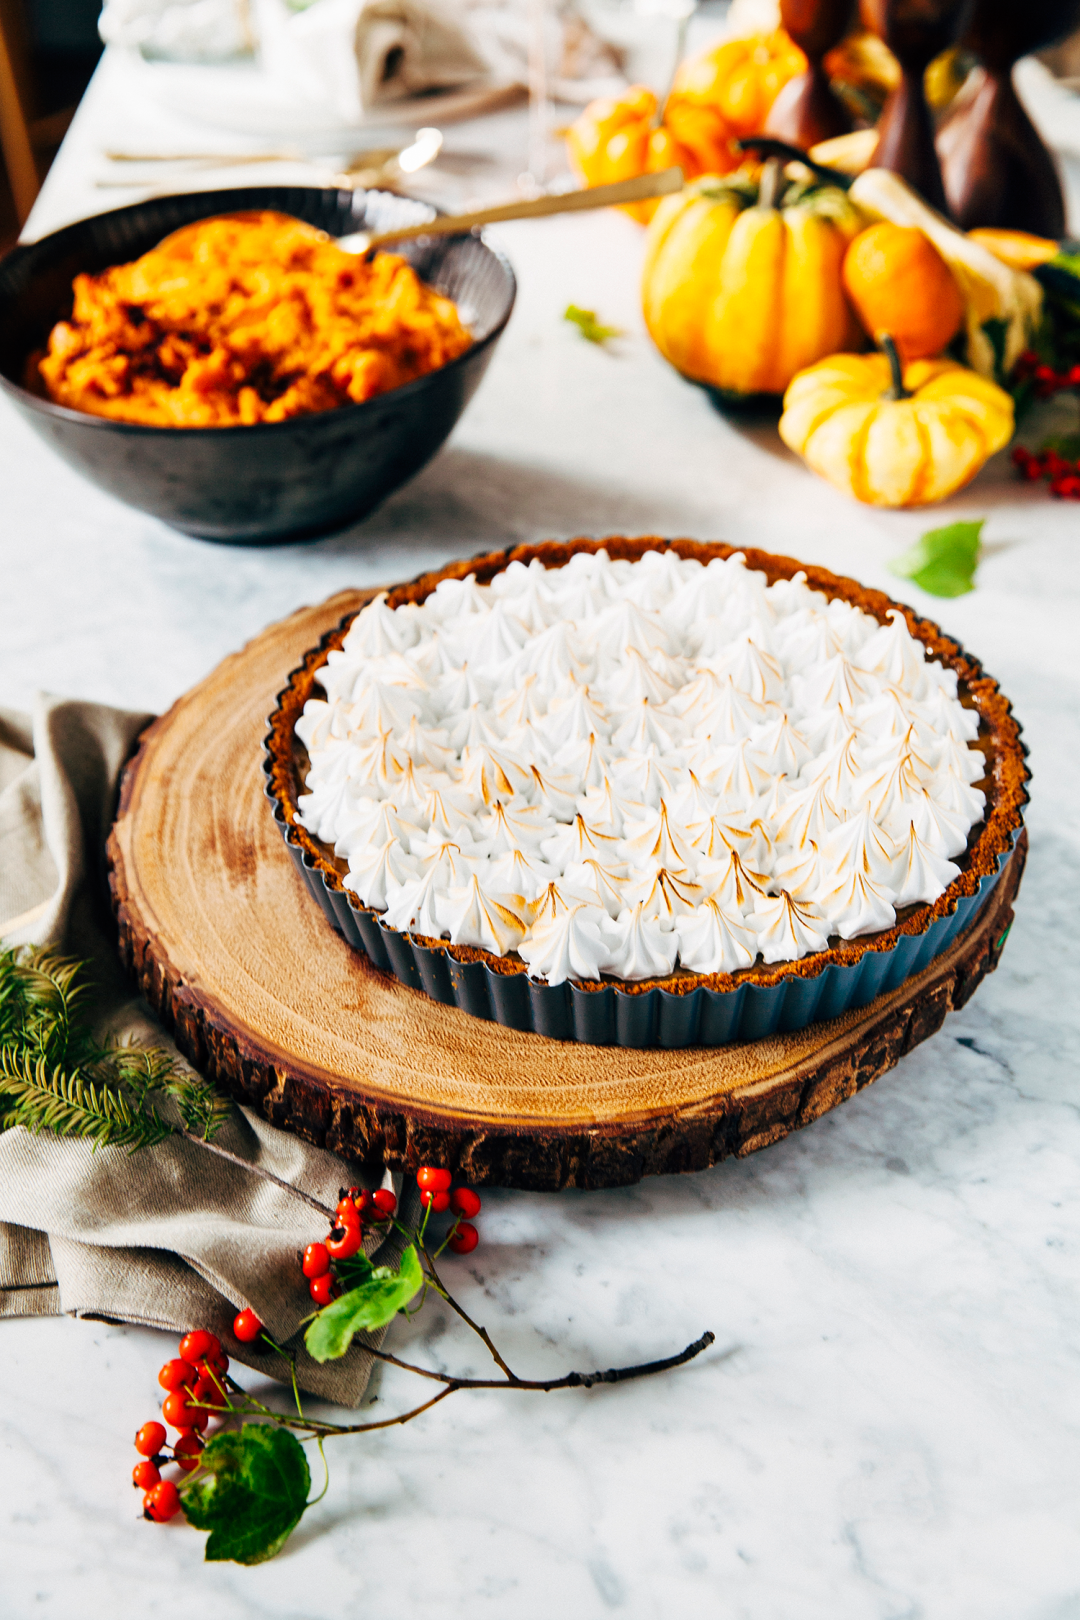 Pumpkin pie with a toasted meringue topping on a wood log serving tray